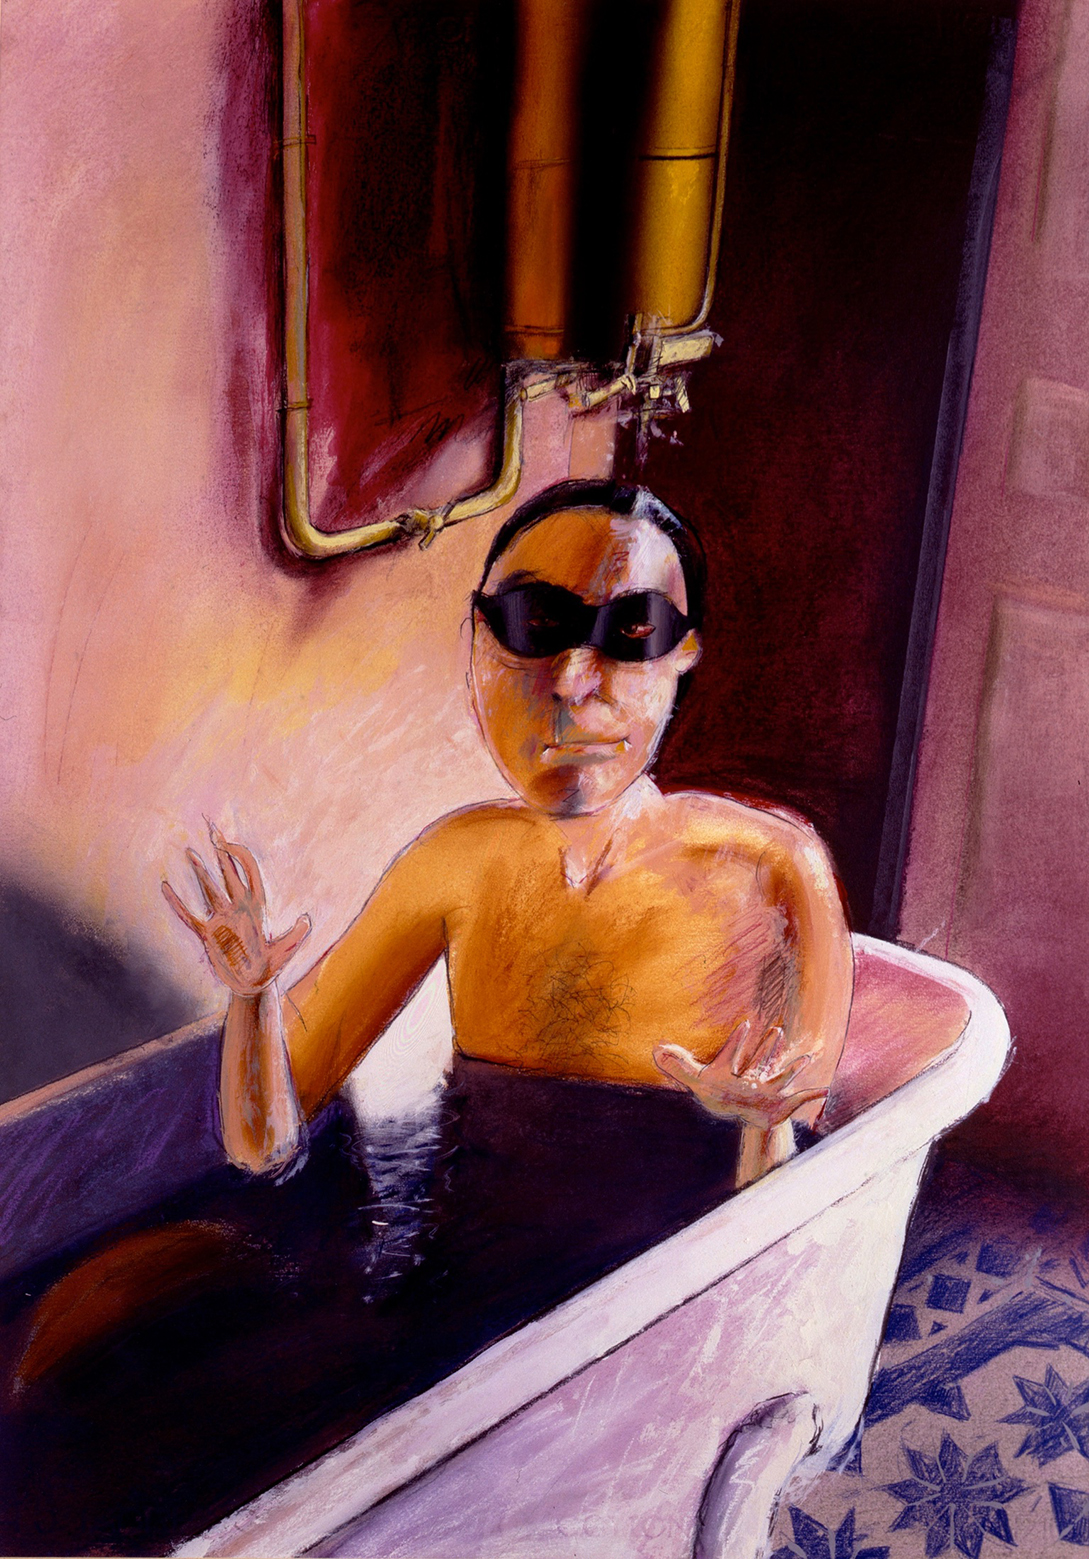 Self portrait in the bathtub